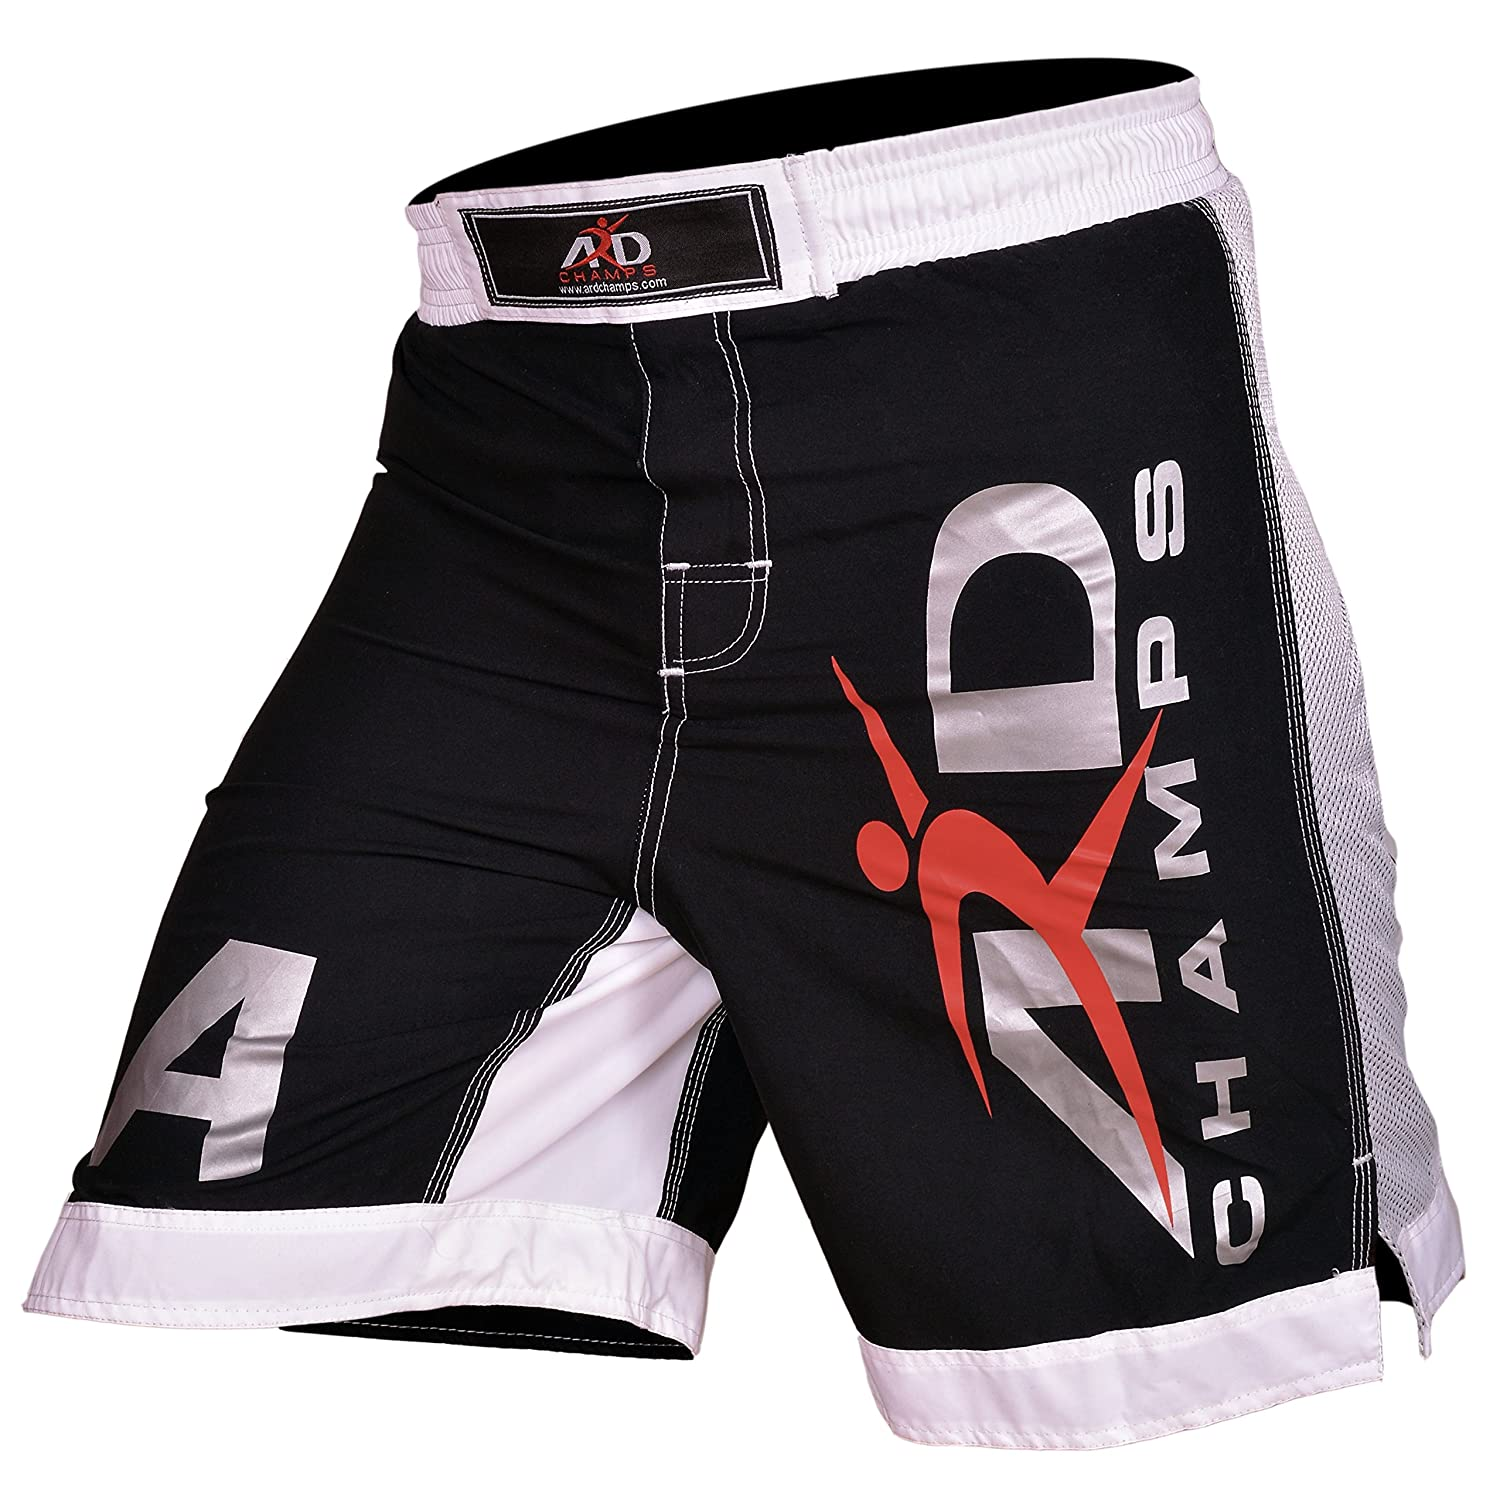 B014FI09TO ARD New Extreme MMA Fight Shorts UFC Cage Fight Grappling Muay Thai Boxing Black (Small) 91tpPoeUCiL